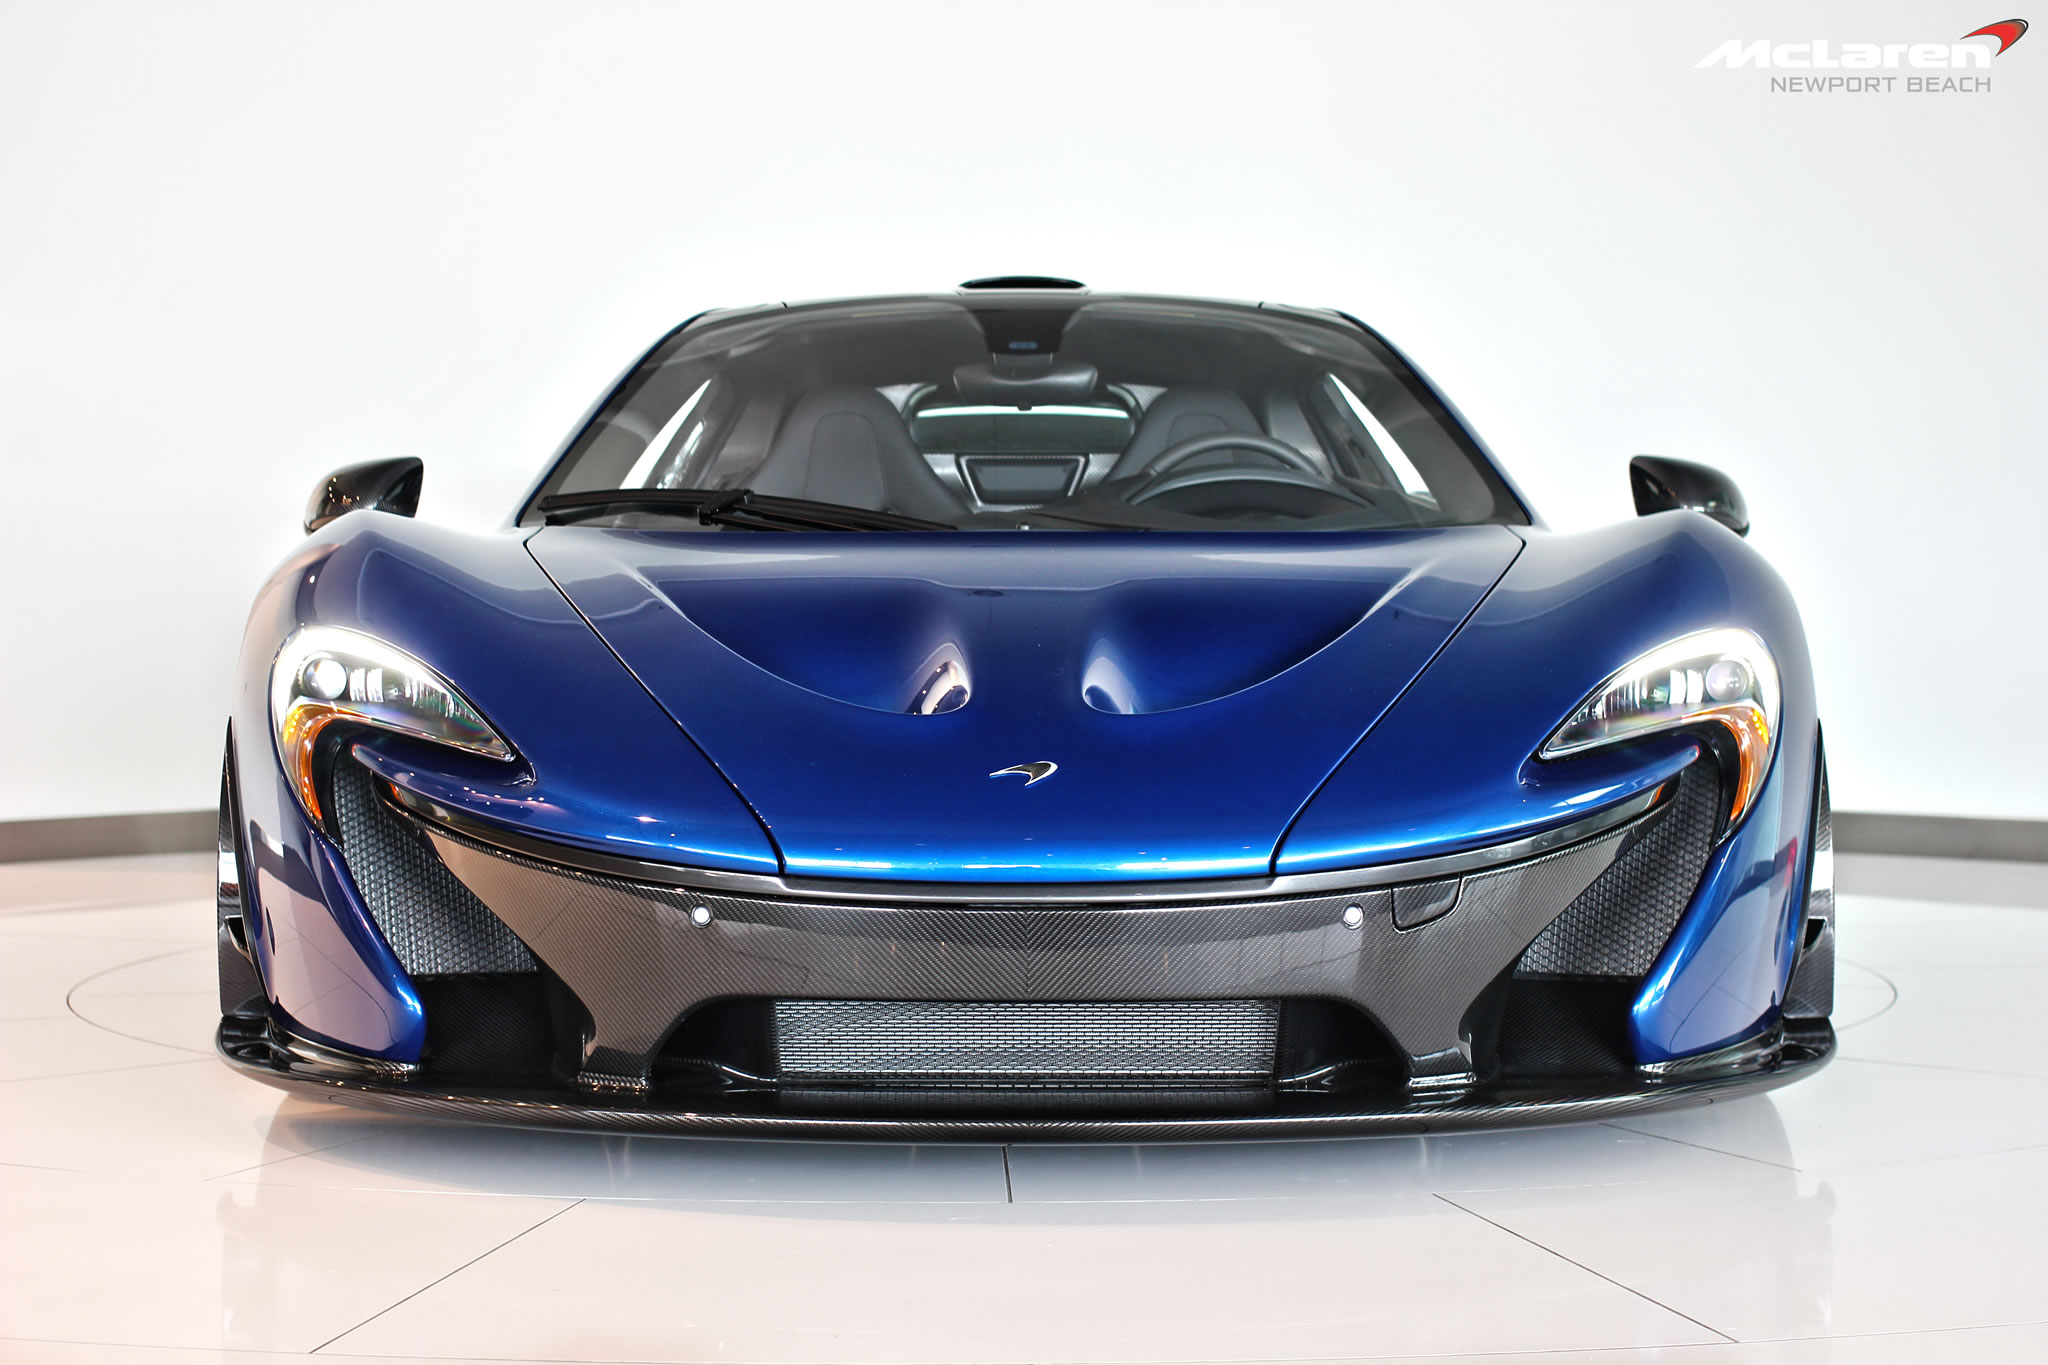 2015 Mclaren P1 At Newport Beach Dealership Front Photo